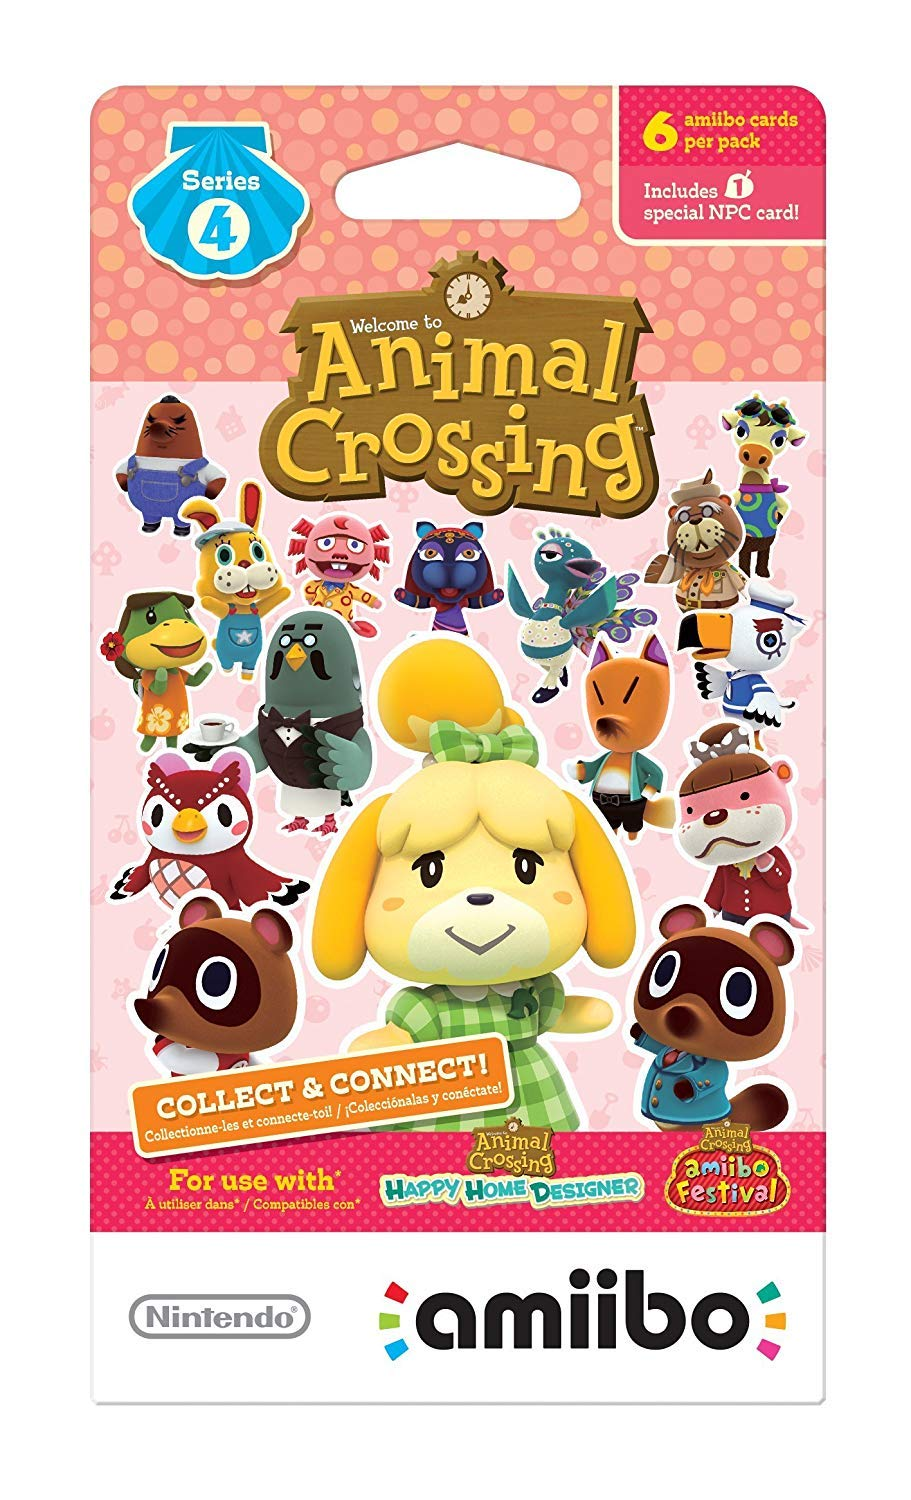 Nintendo Animal Crossing amiibo Cards Series 1, 2, 3, 4 for Nintendo Wii U and 3DS, 1-Pack (6 Cards/Pack) (Bundle) Includes 24 Cards Total by Nintendo (Image #5)